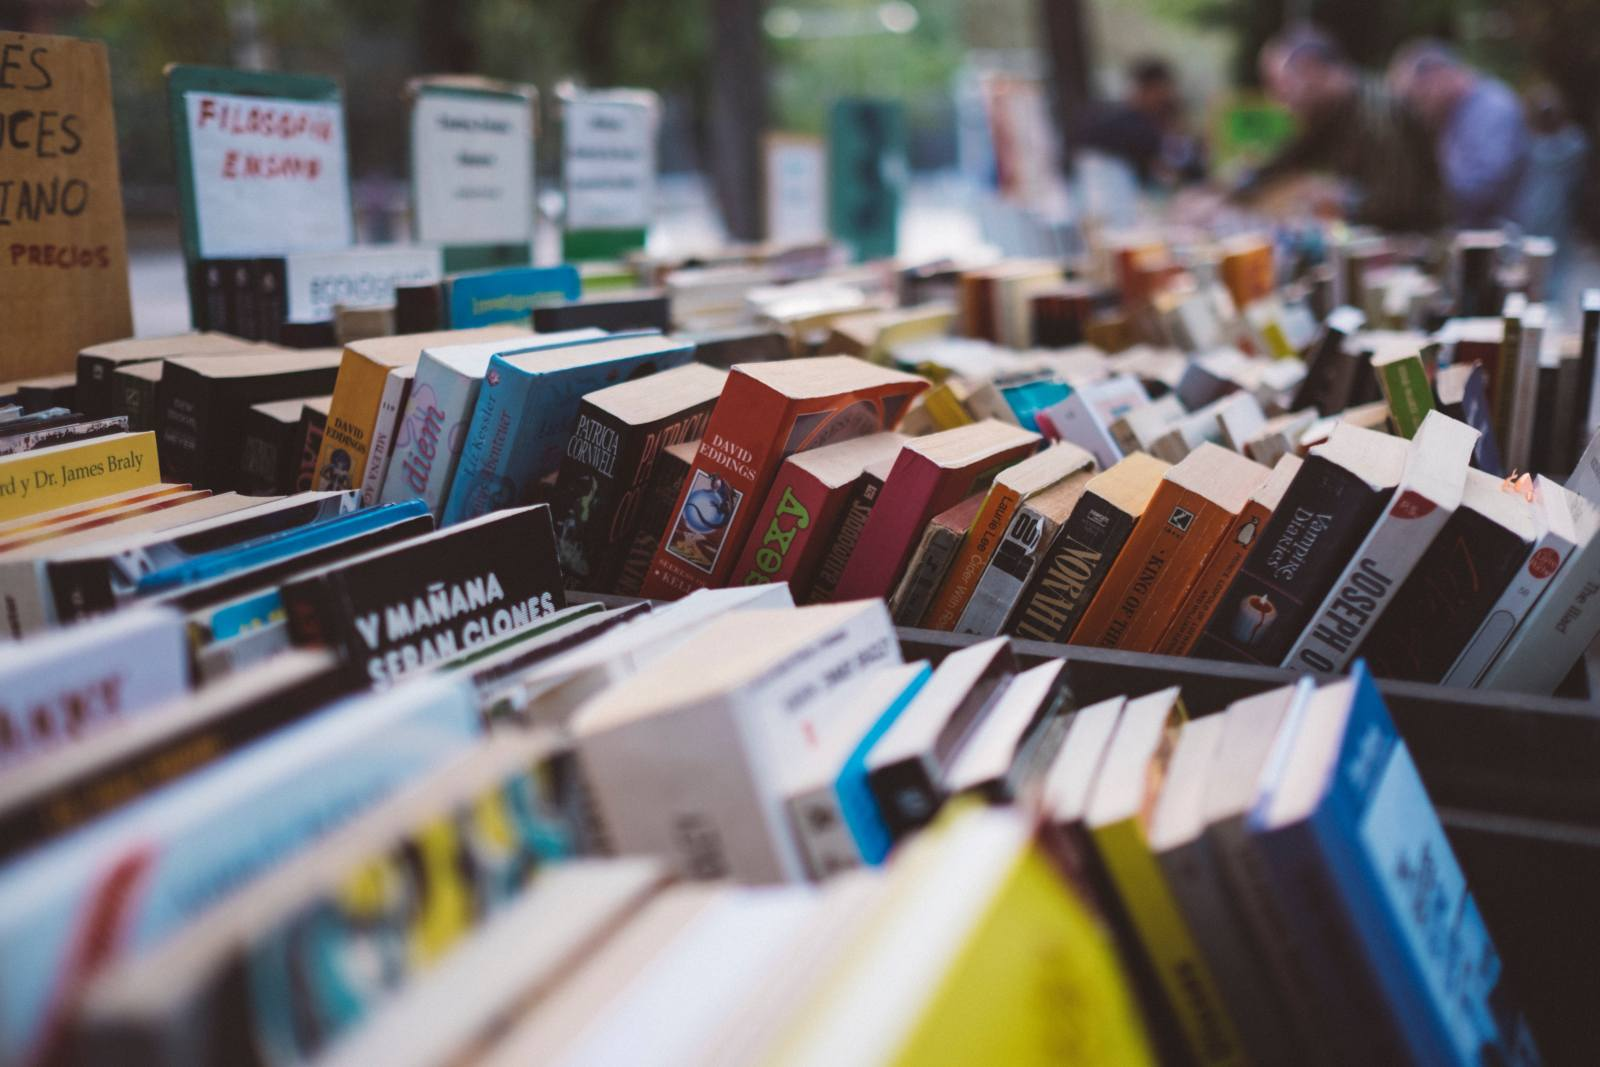 The Grand Book Sale supports Puttinu cares